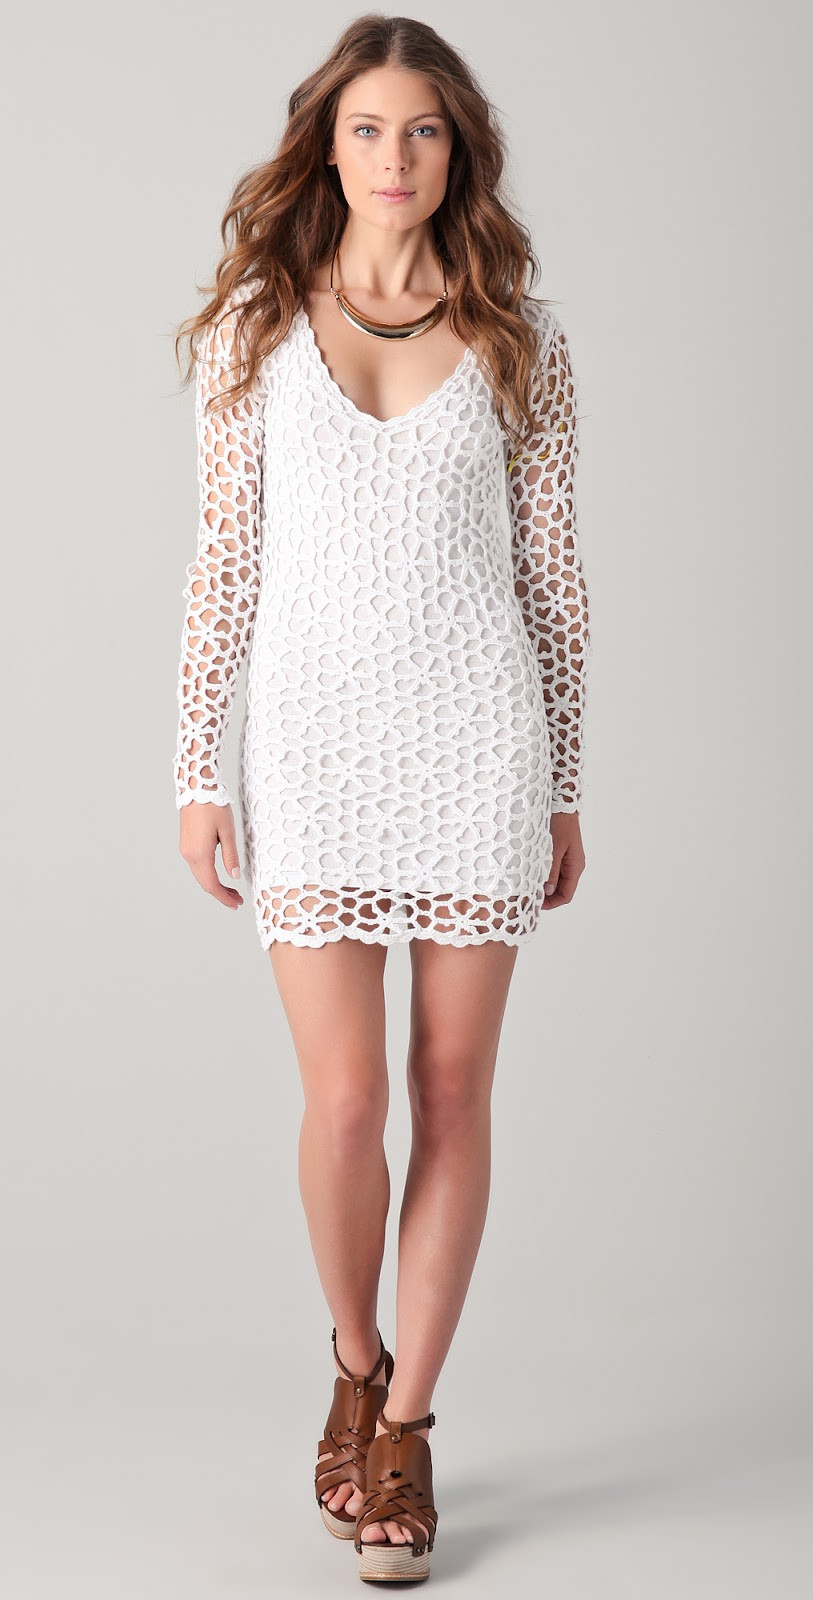 Fresh Crochetemoda Blog Vestido Branco De Crochet Crochet Trim Dresses Of Attractive 47 Images Crochet Trim Dresses